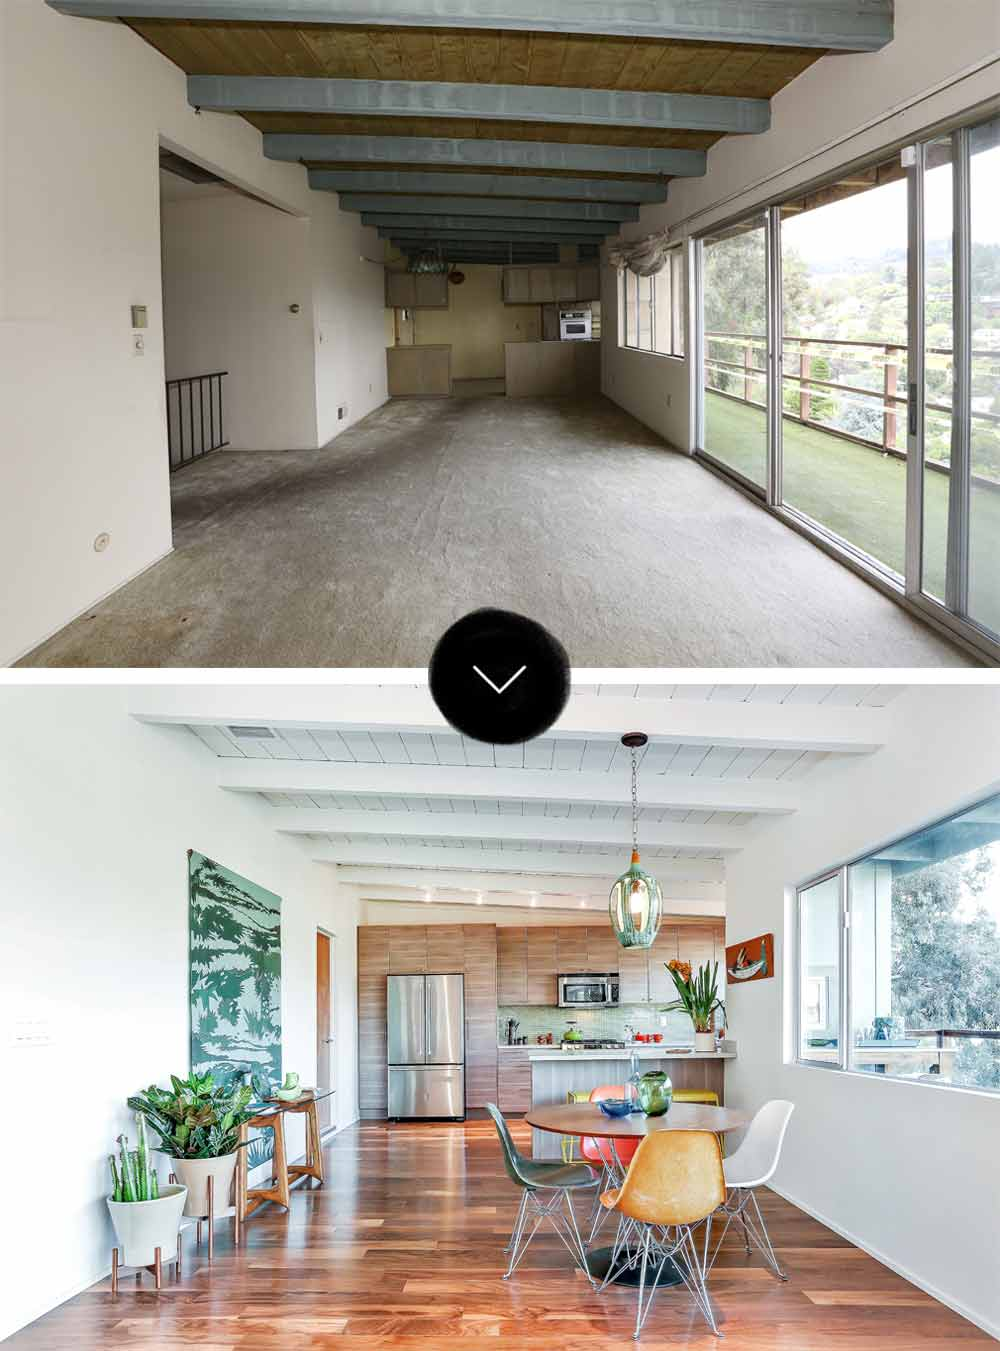 Before & After: A Mid-Century Post and Beam Home in Mt. Washington, on Design*Sponge